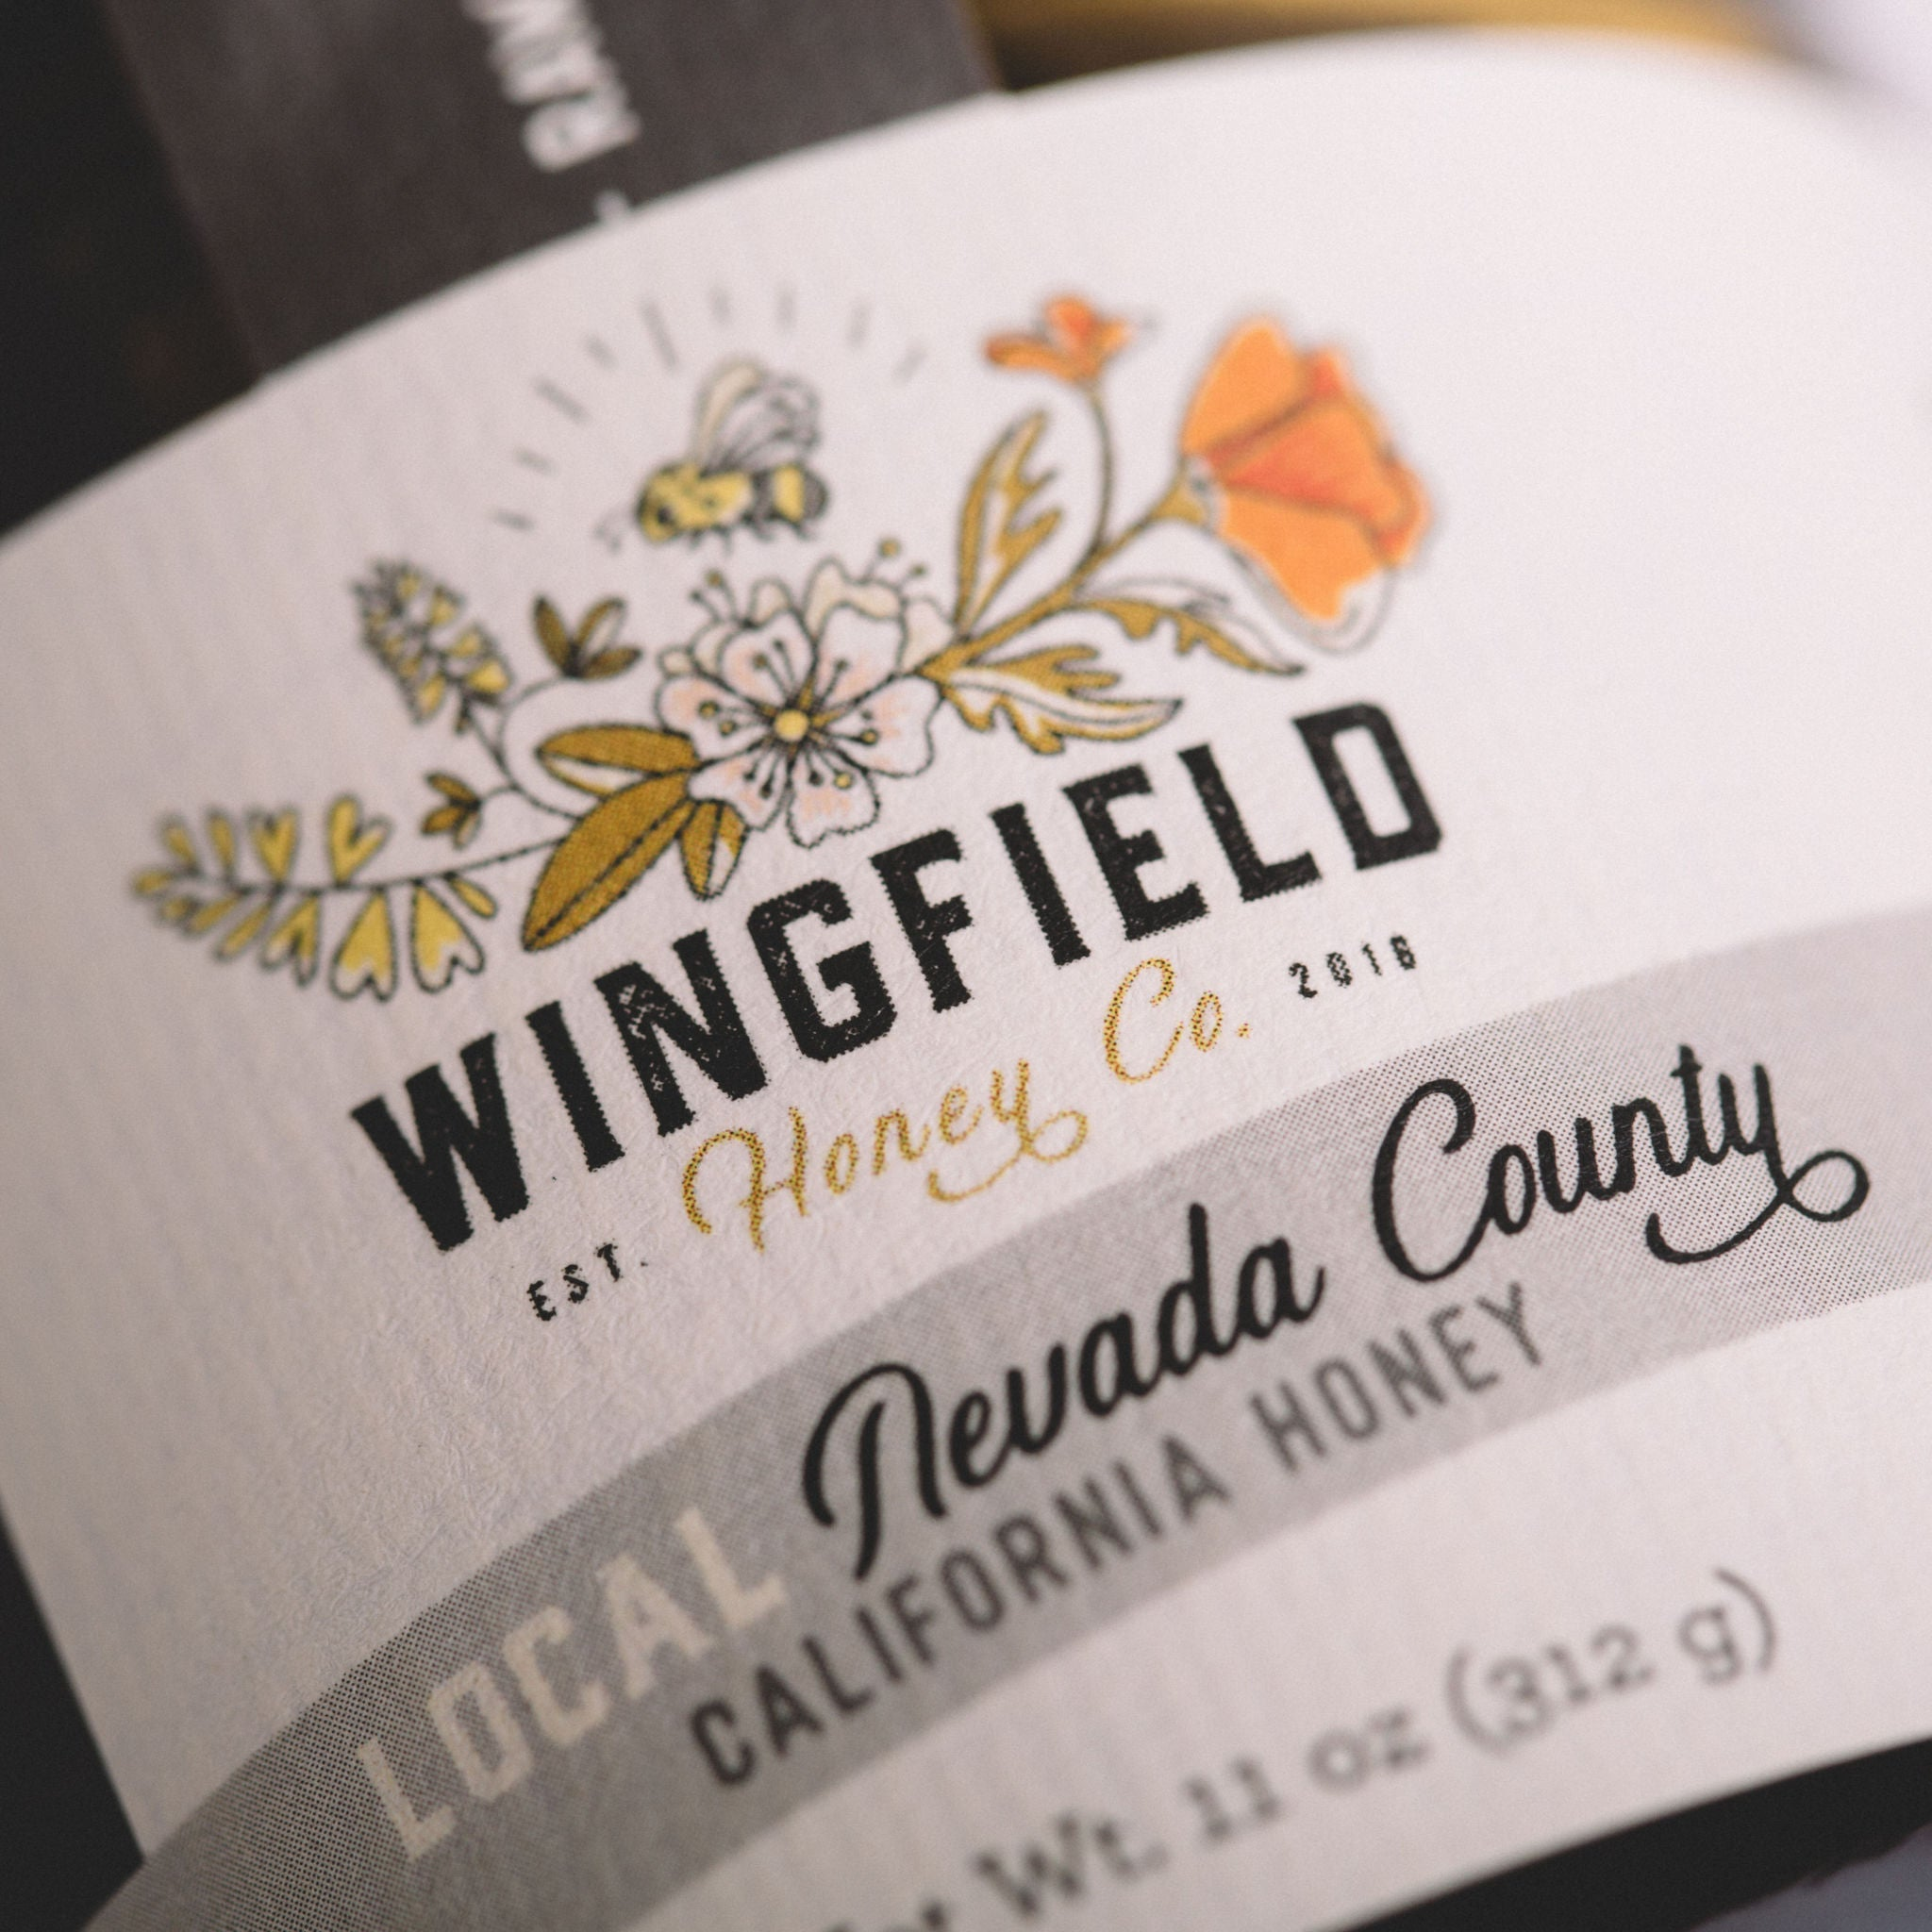 WINGFIELD HONEY CO. || HONEY